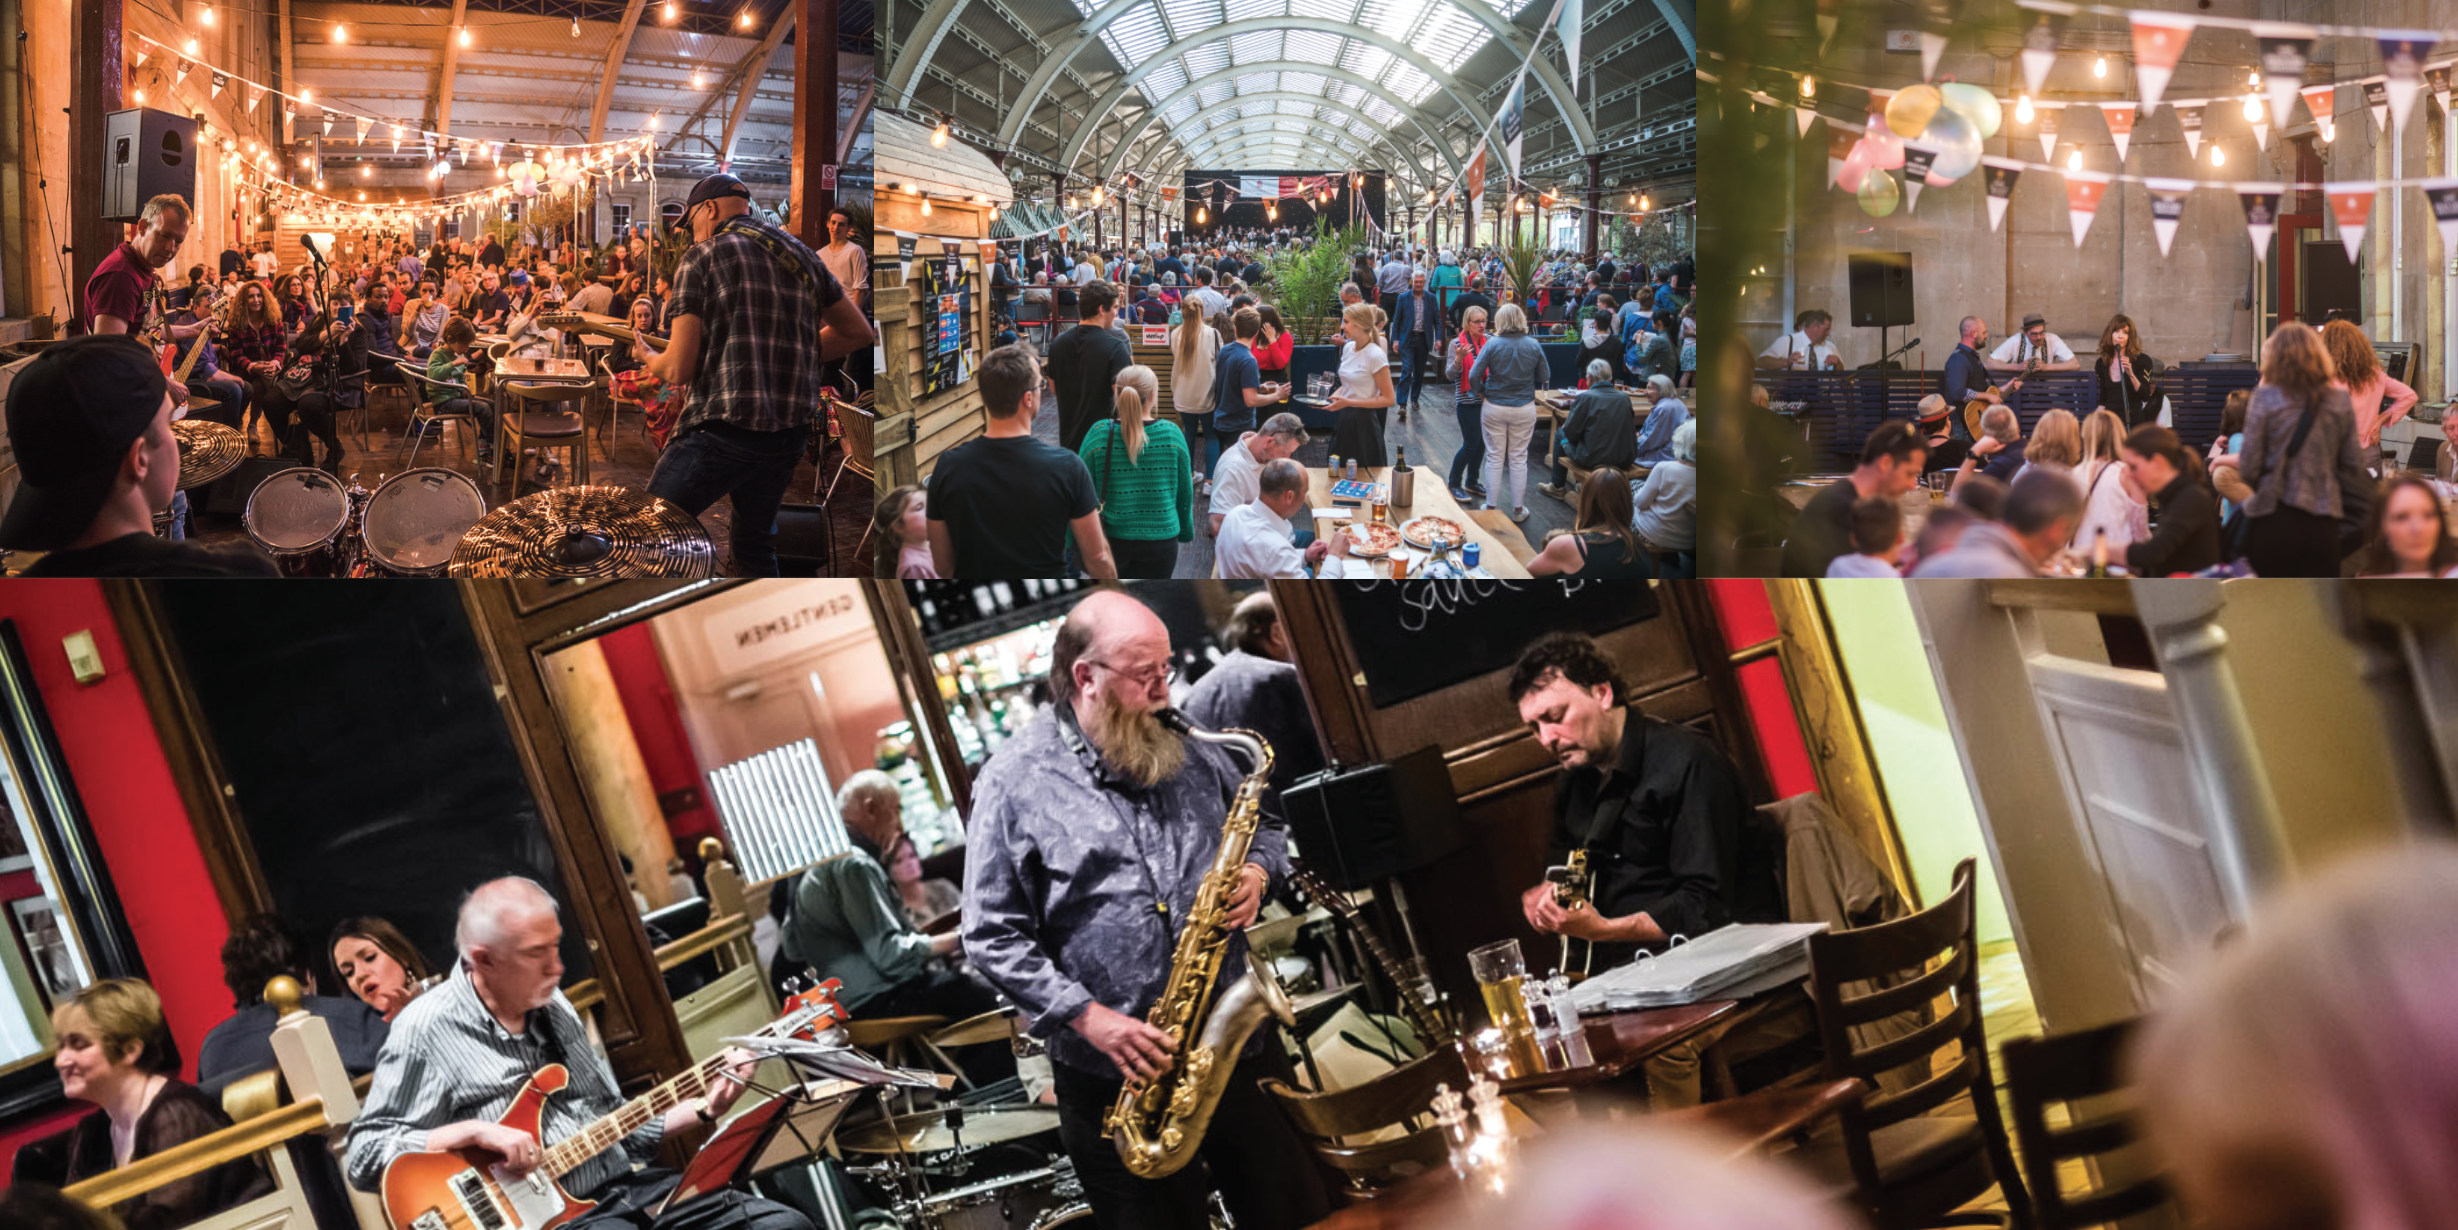 Live music at Bath Pizza Co and Green Park Station